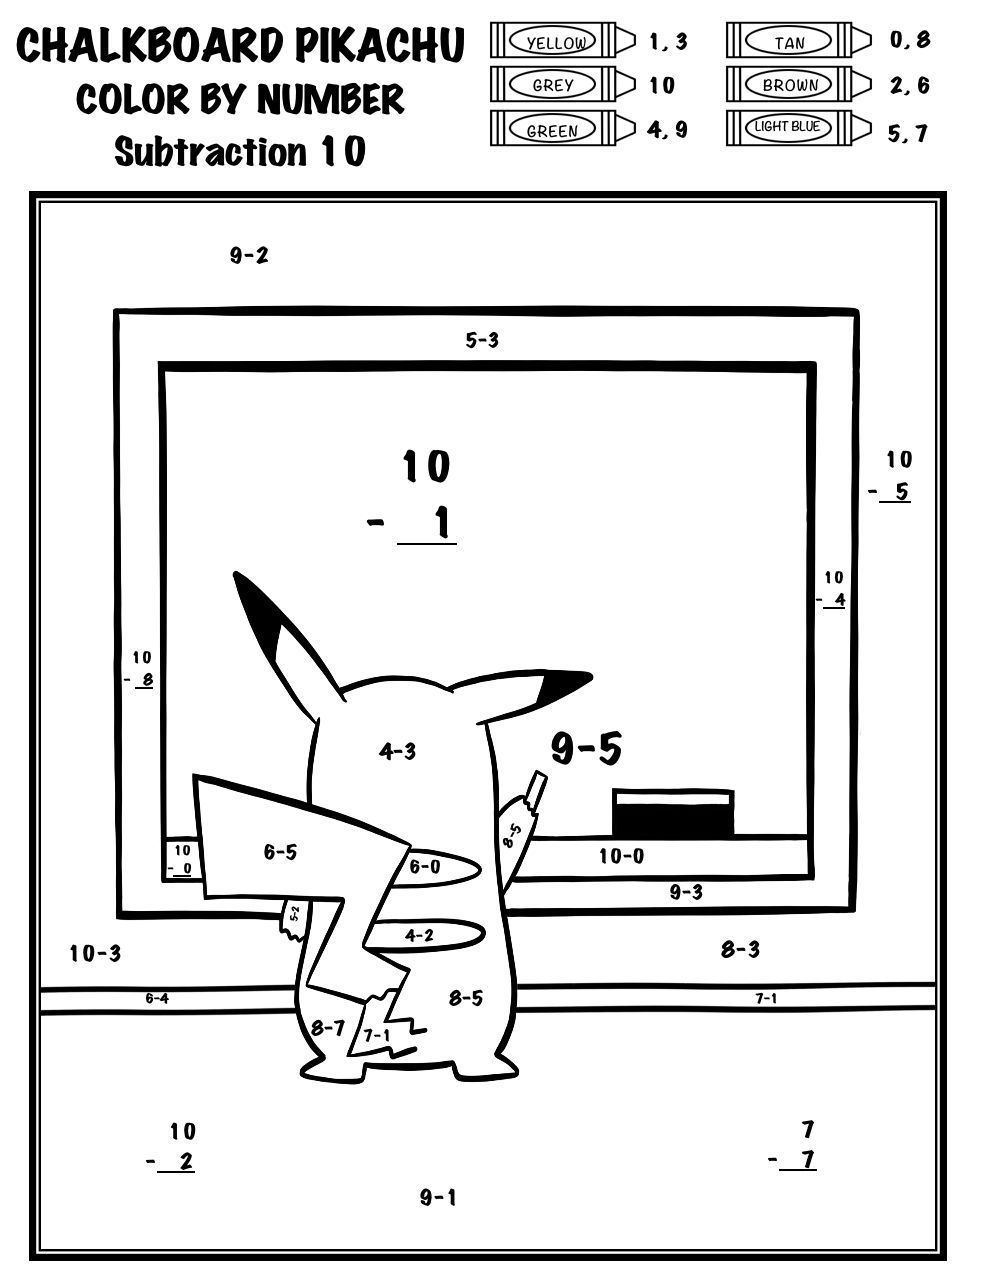 Get Your Students Back Into The Swing Of Things With This Back To School Themed Color By Number Th Math Activities Elementary Pokemon Pokemon Coloring Pages [ 1287 x 990 Pixel ]